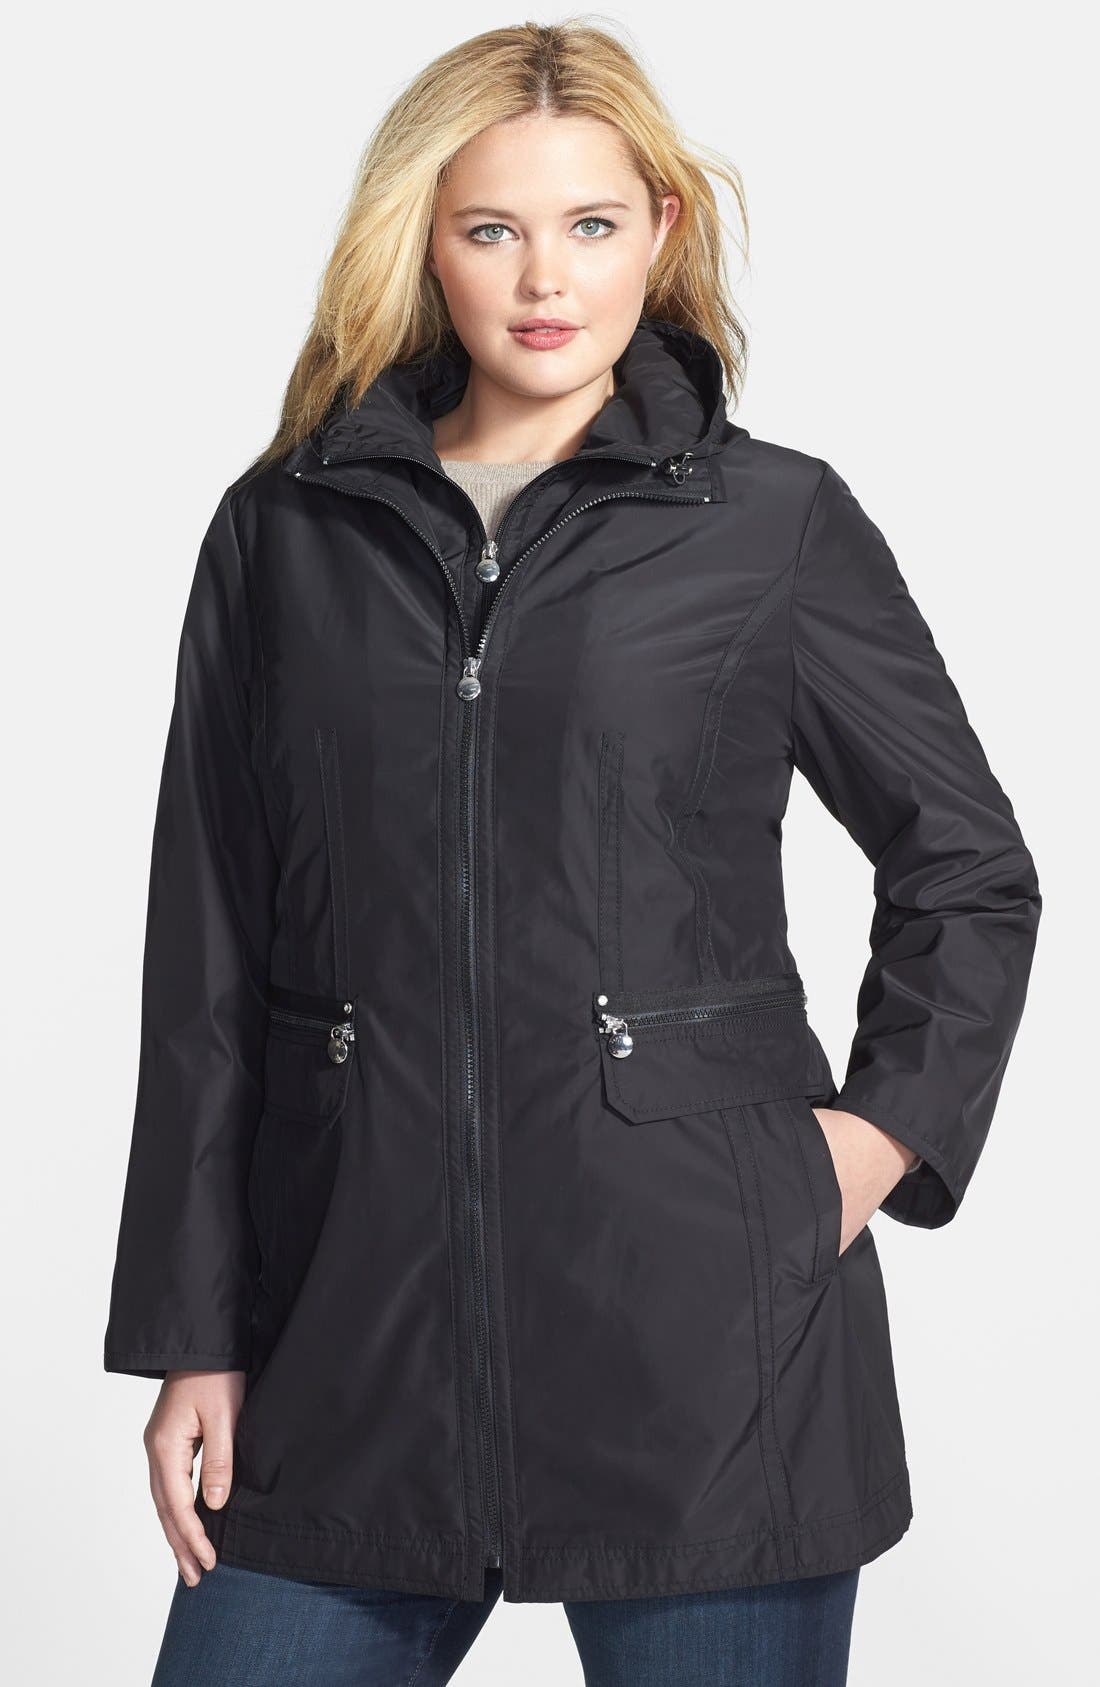 Main Image - Laundry by Shelli Segal Packable Coat with Removable Hooded Bib (Plus Size)